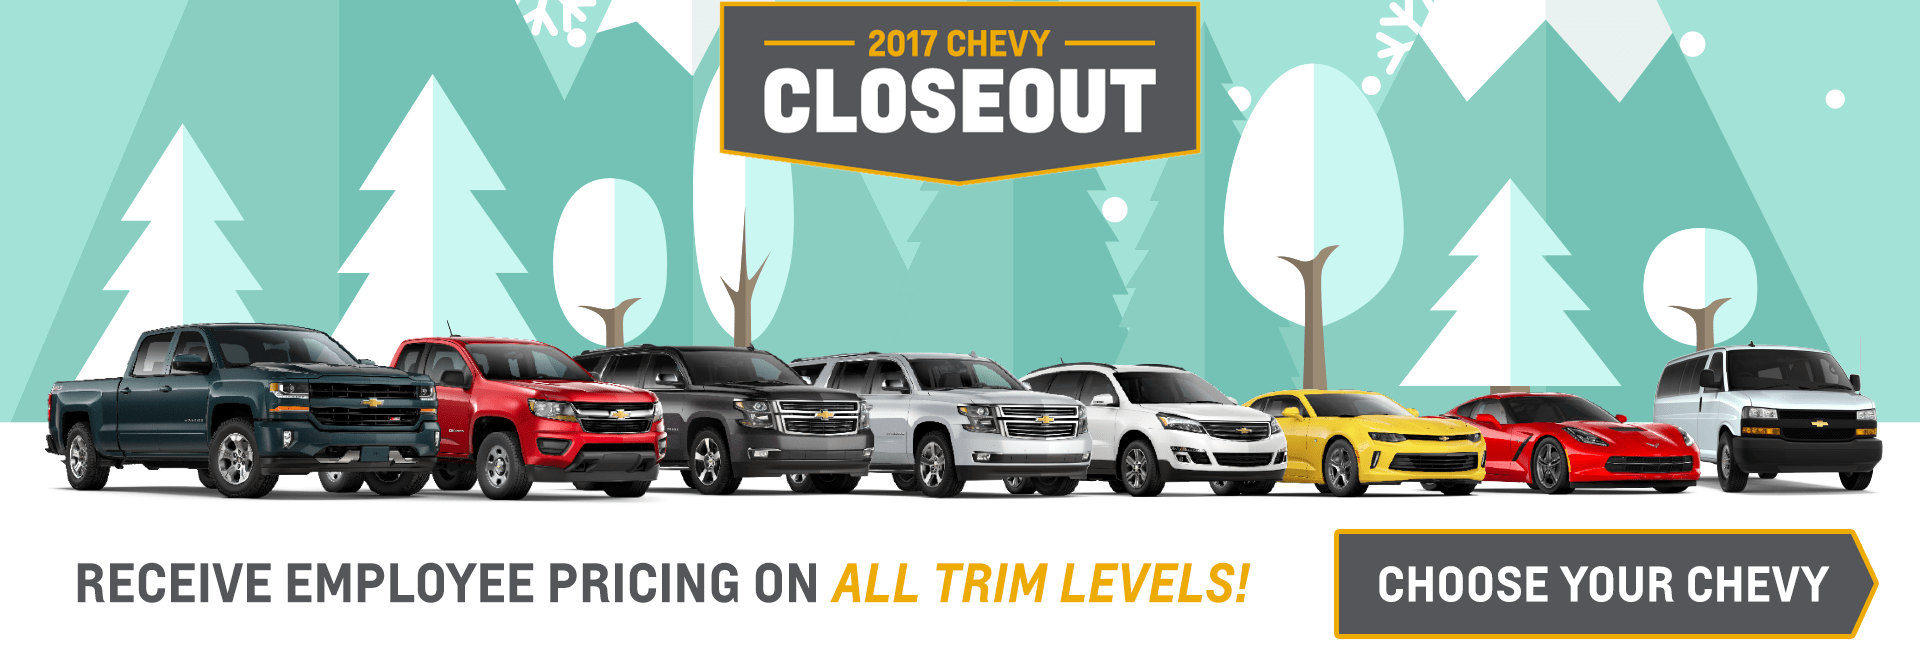 EVERYONE RECEIVES CHEVY EMPLOYEE PRICING!